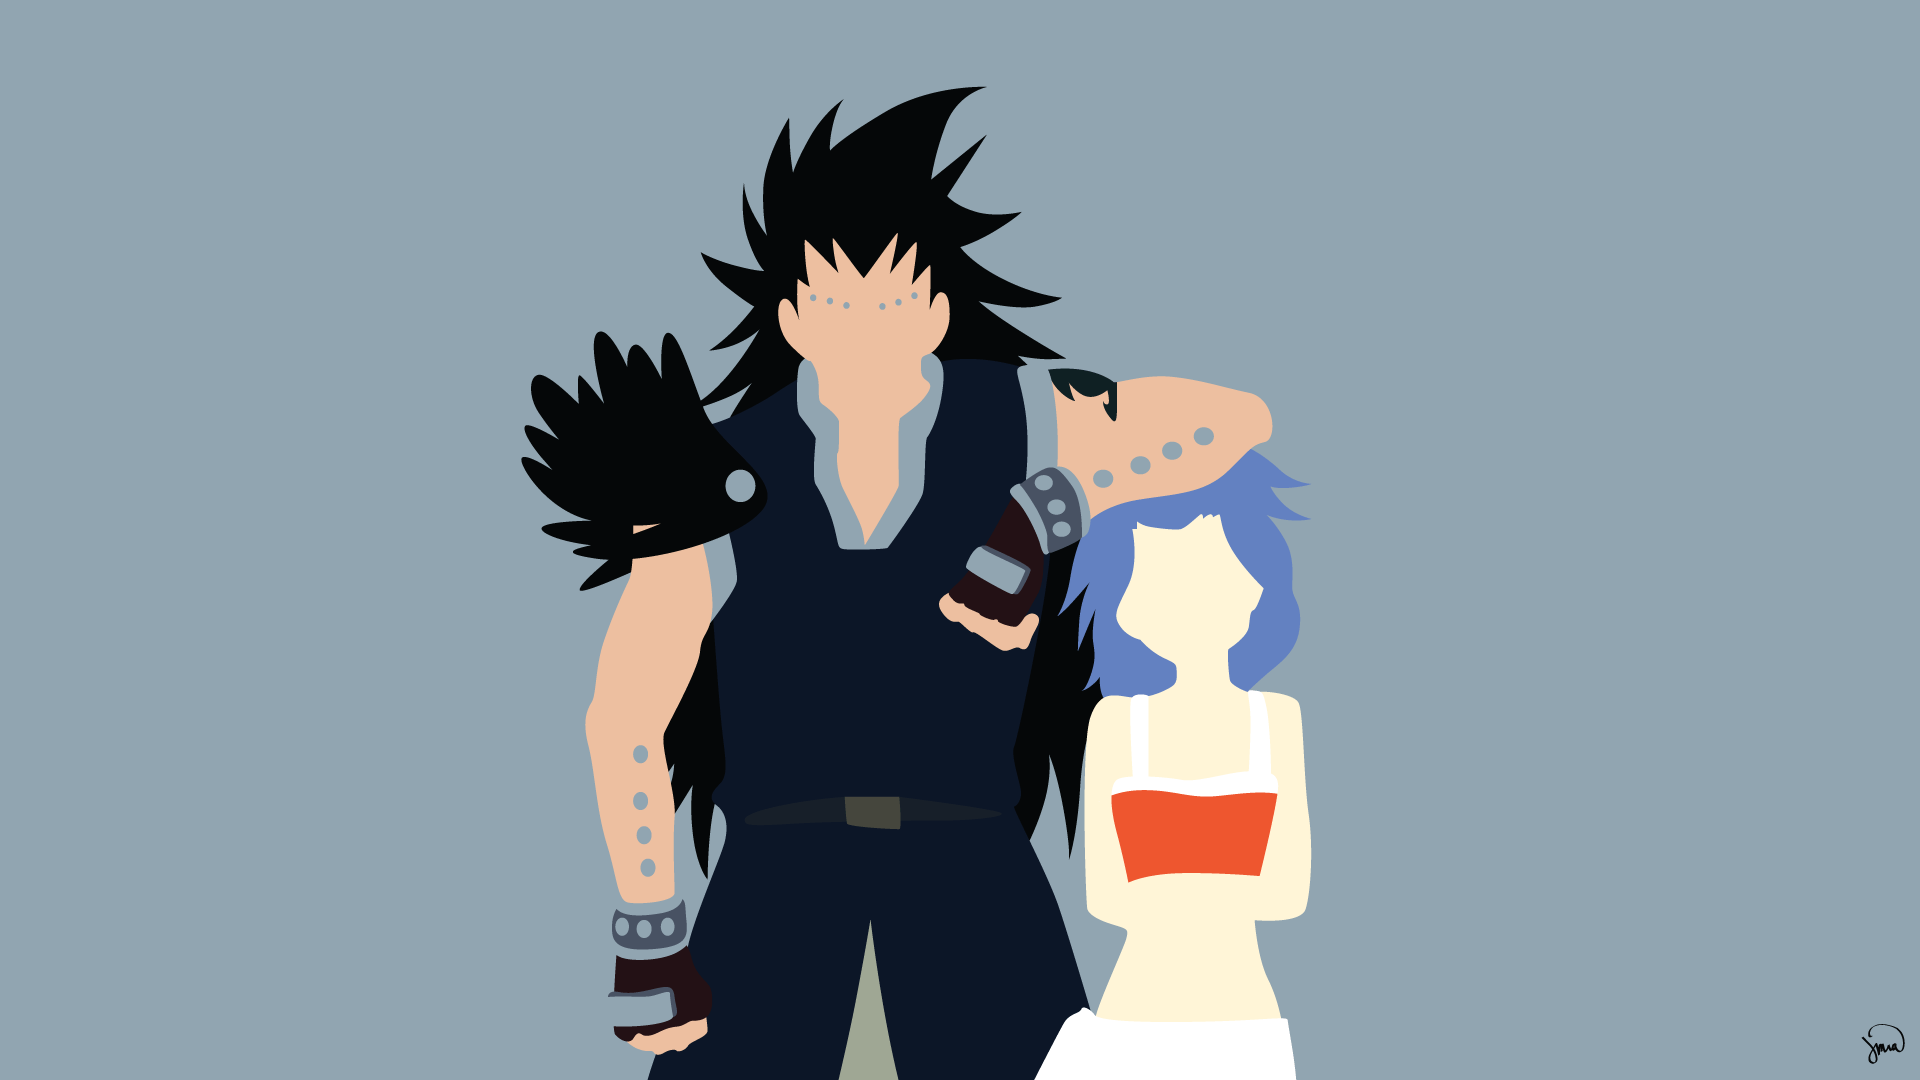 Gajeel and Levy Fairy Tail Minimalistic Wallpapers by greenmapple17